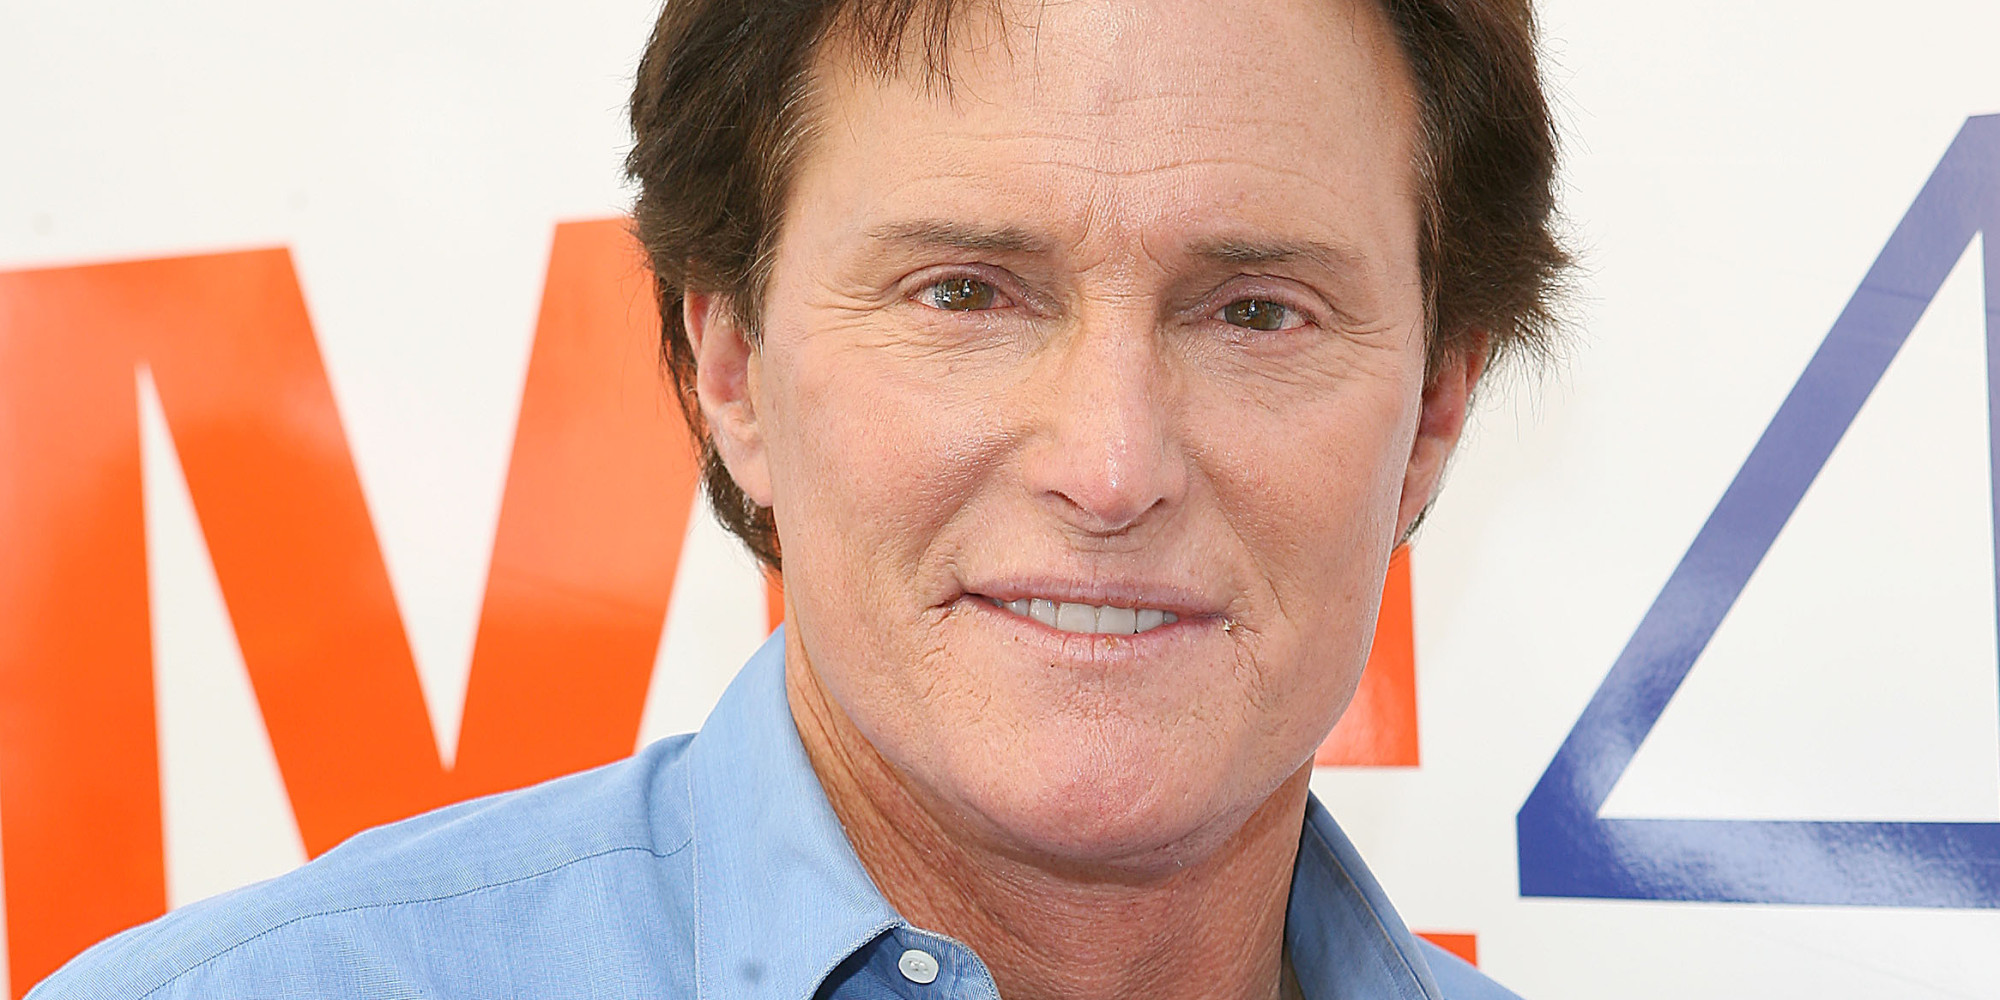 Tee's Blog: Bruce Jenner is dating Kris Jenner's Best friend?